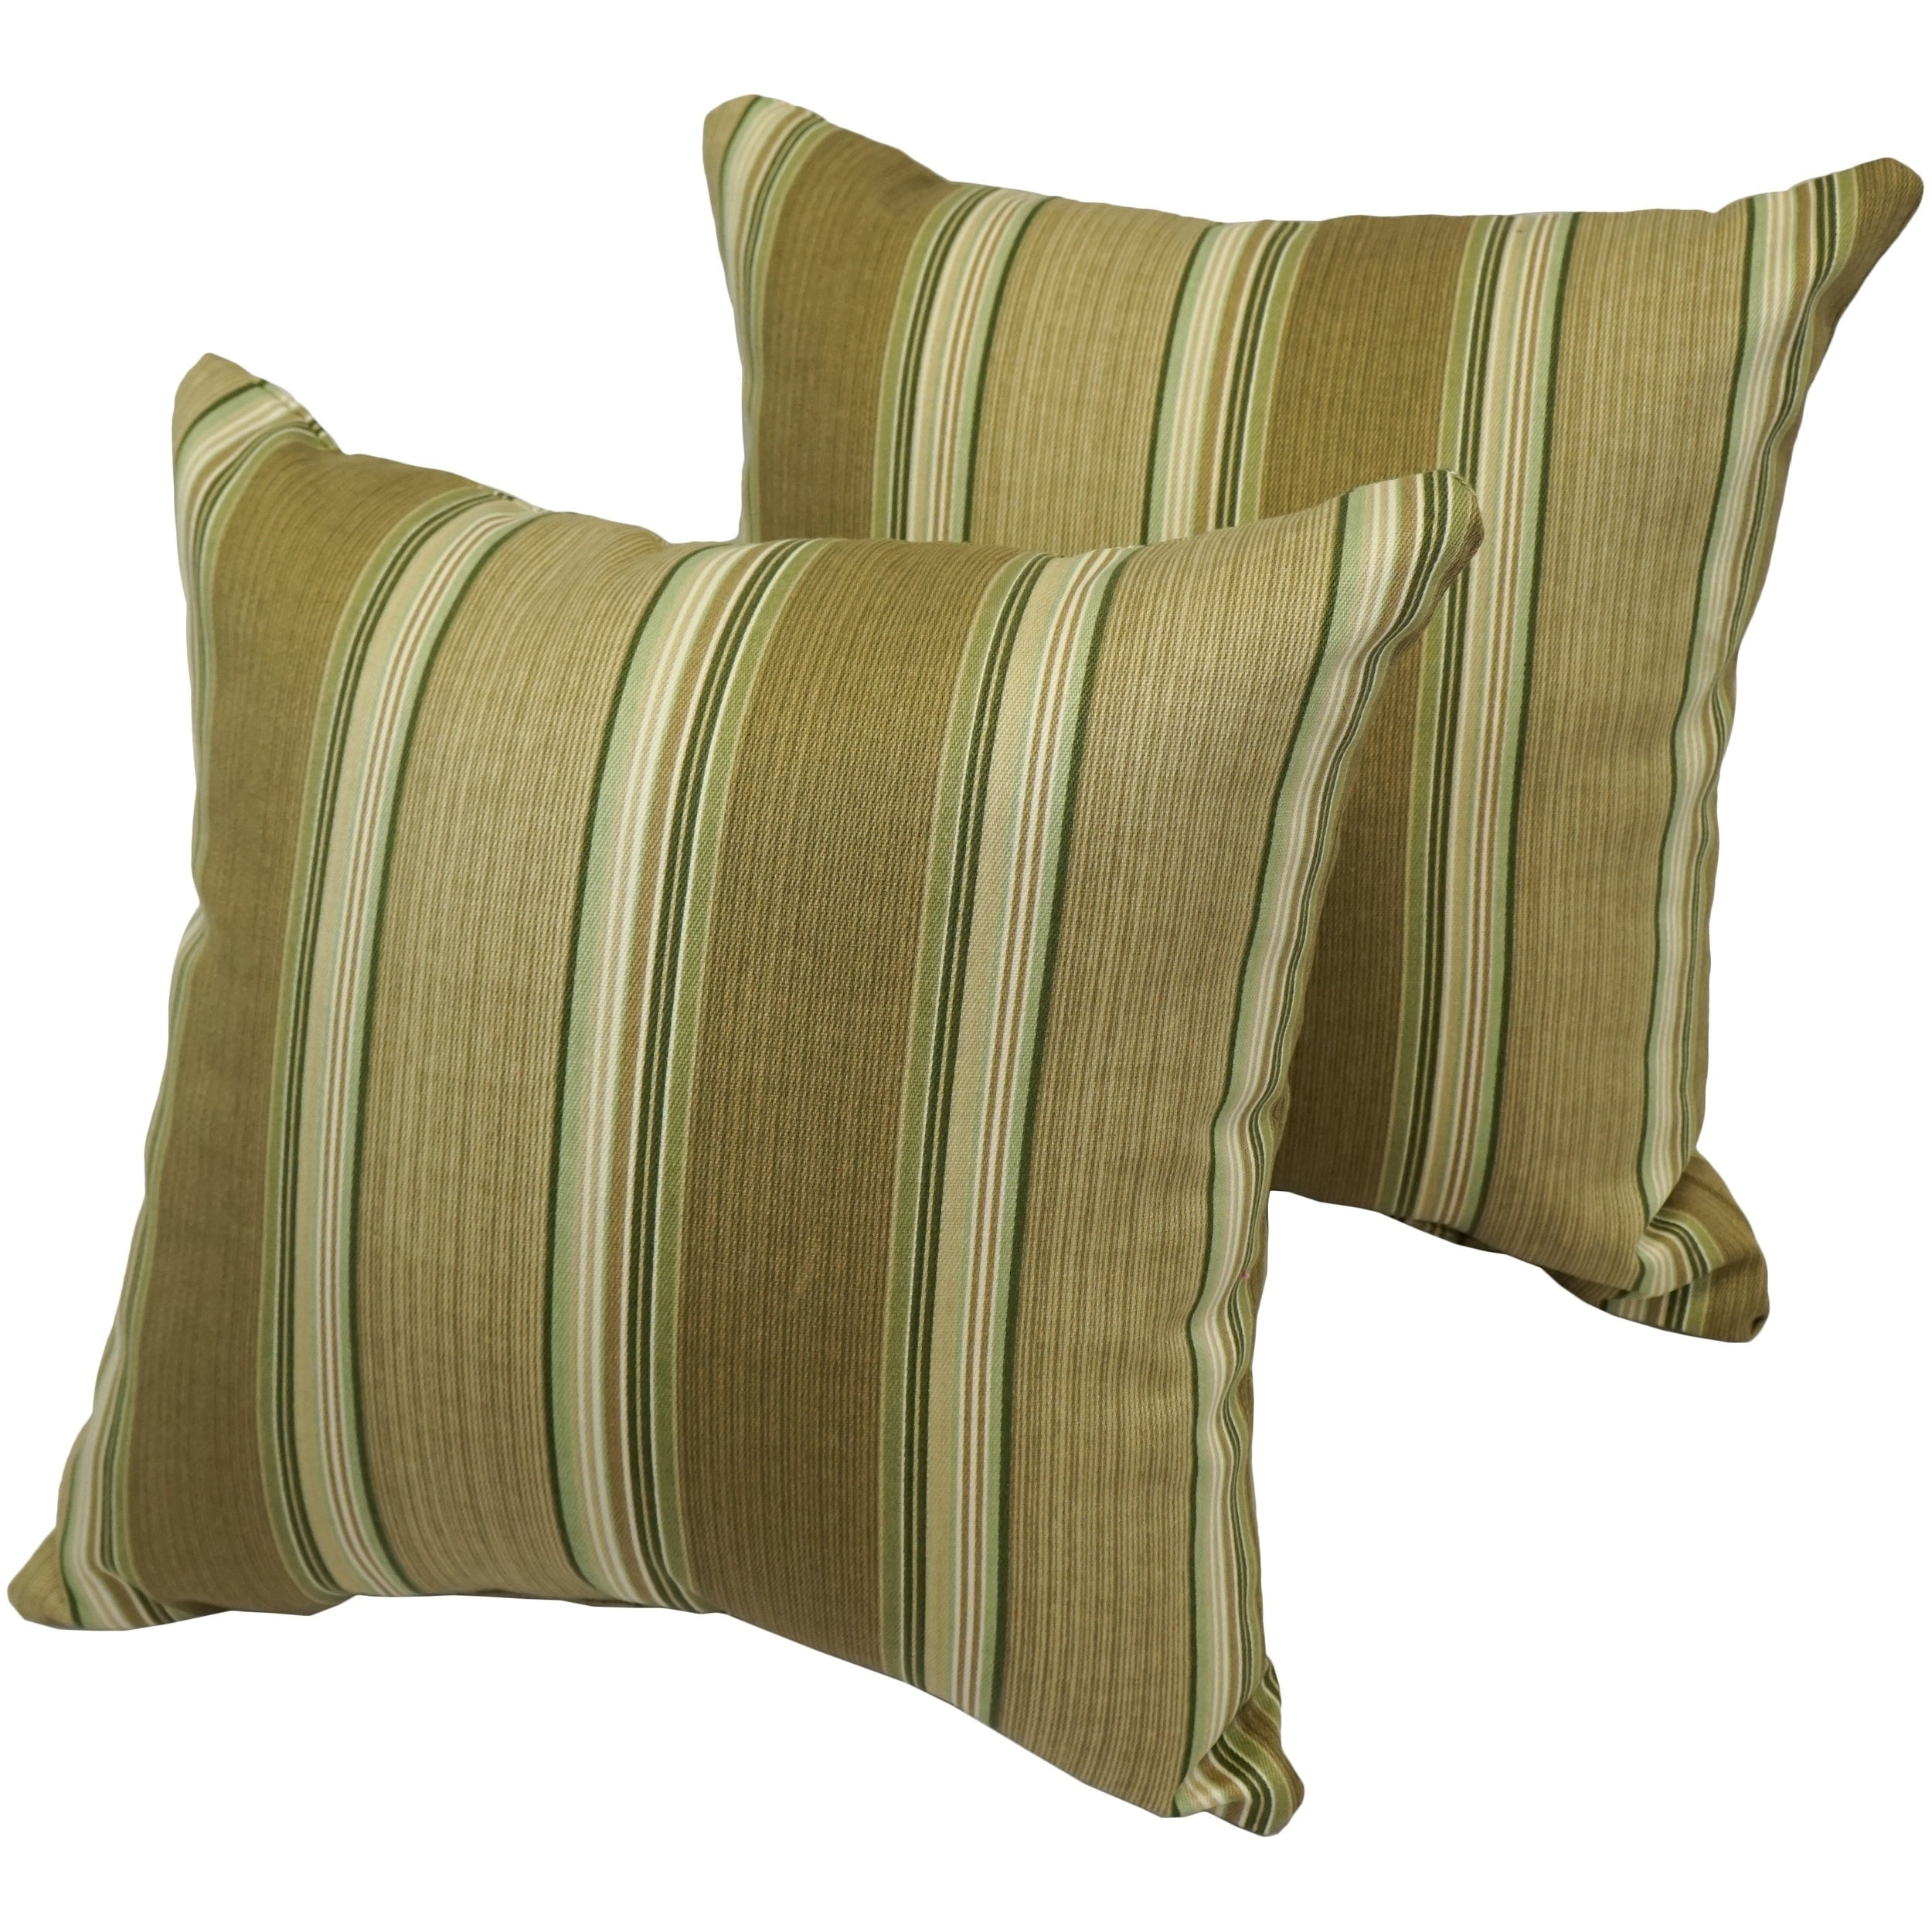 Olive Stripe 17-inch Indoor/Outdoor Throw Pillow (Set of 4) (Throw Pillow - Modern & Contemporary - Striped)